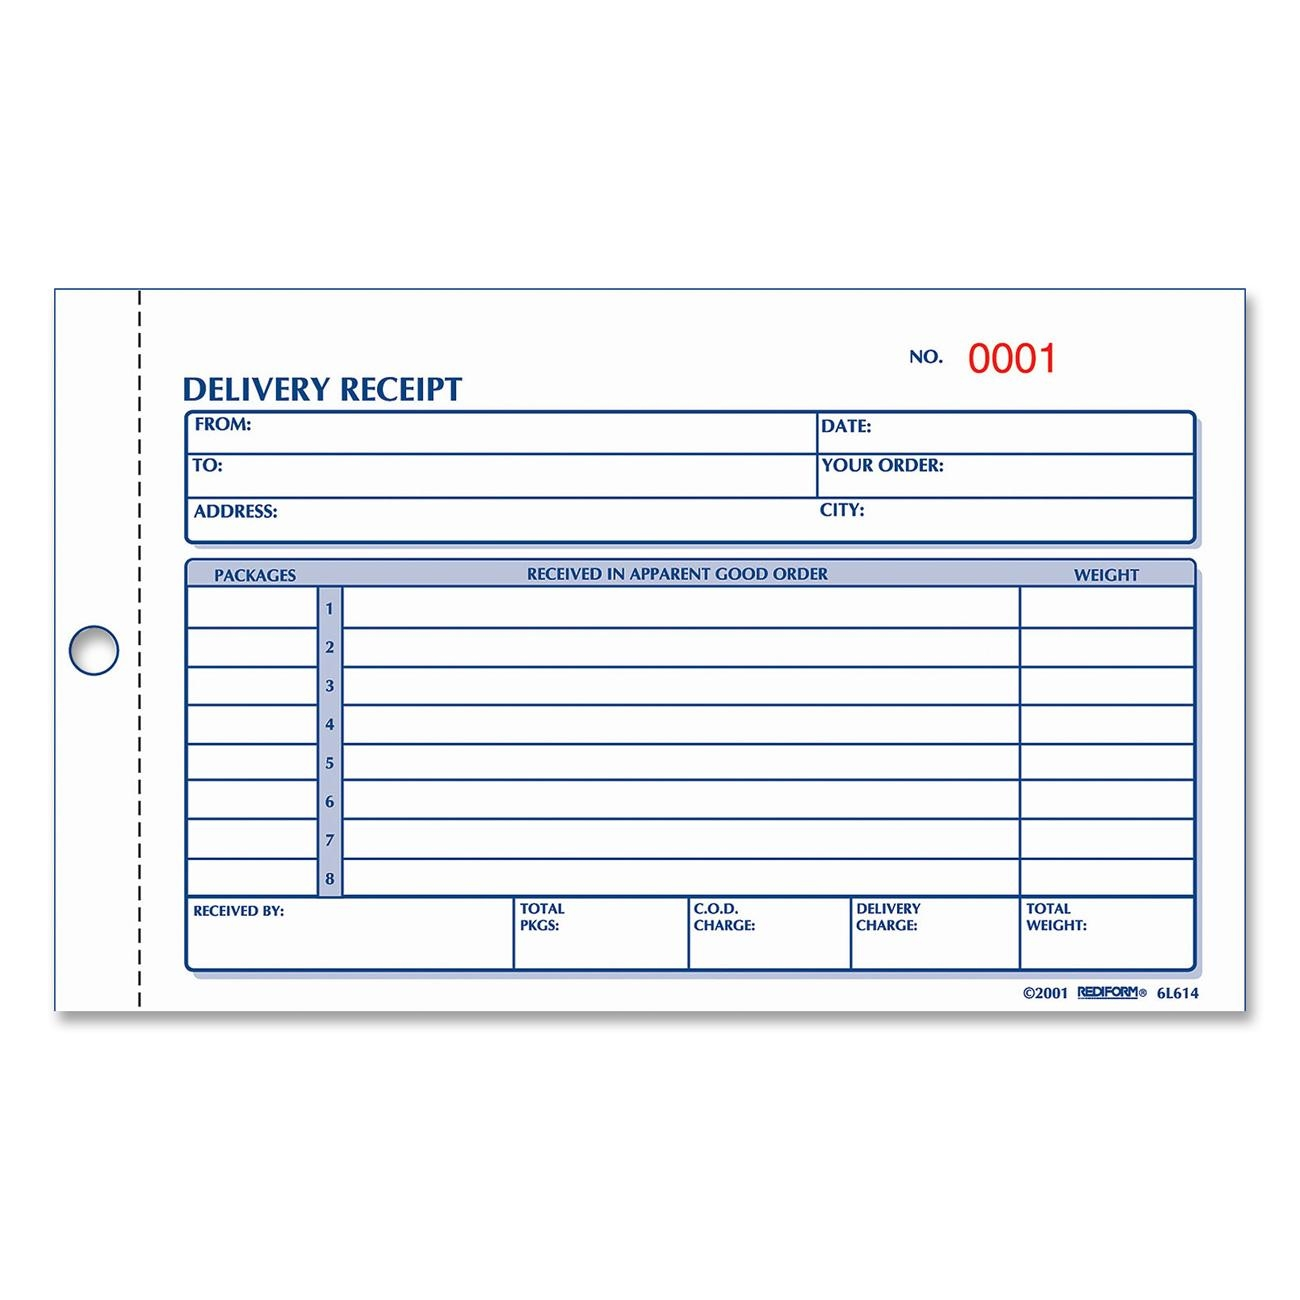 delivery receipt form template – Delivery Receipt Form Template